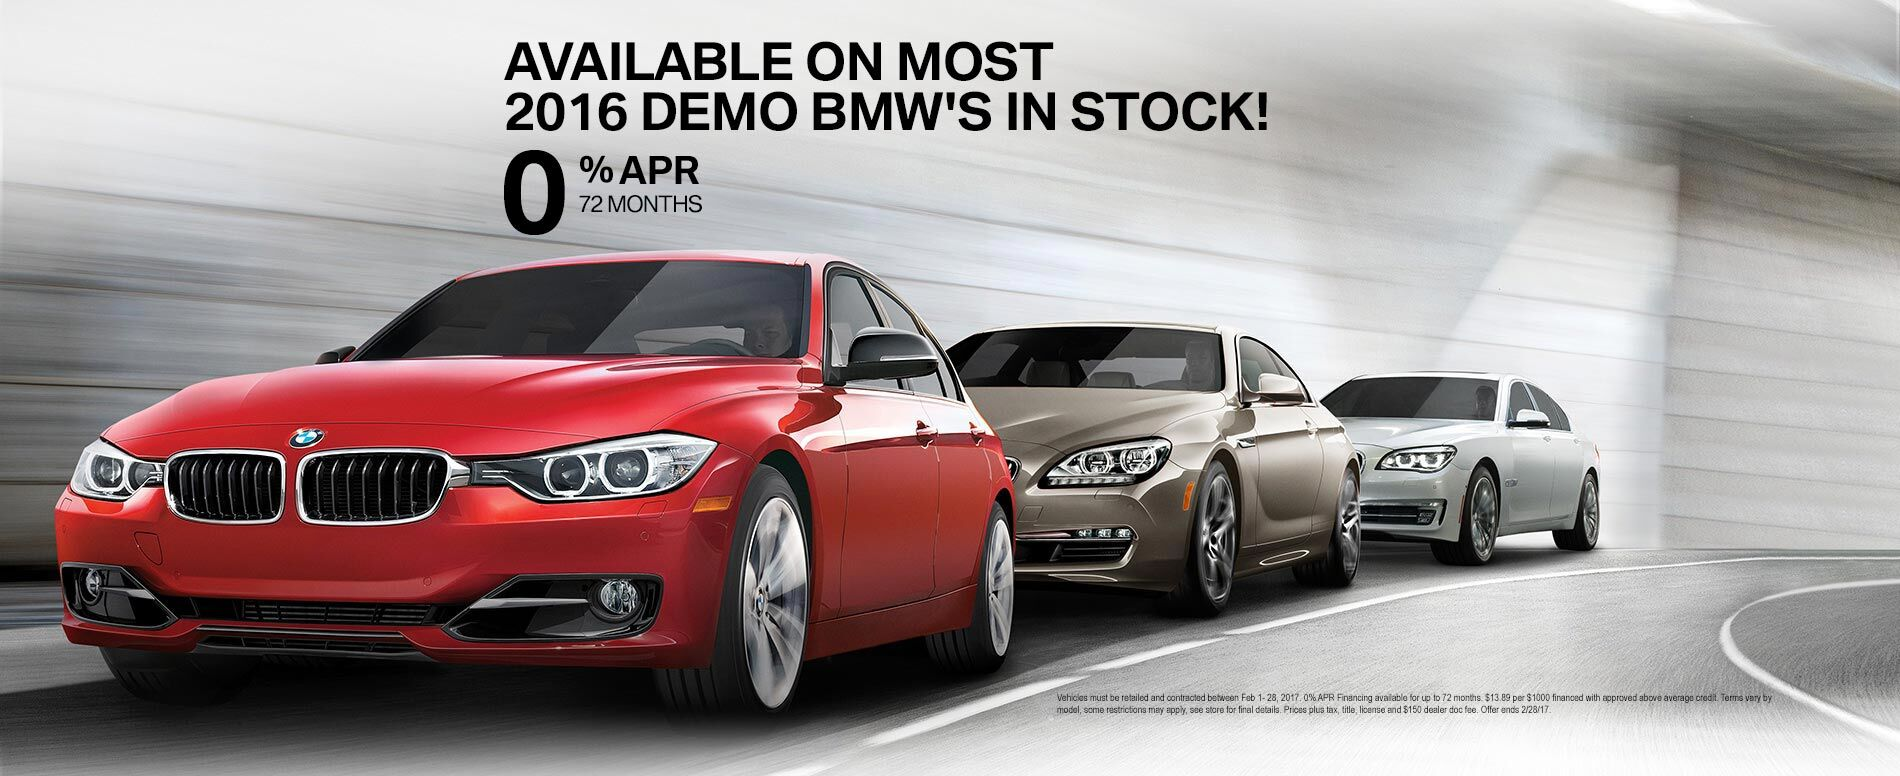 Available on Most 2016 Demo BMWs in stock